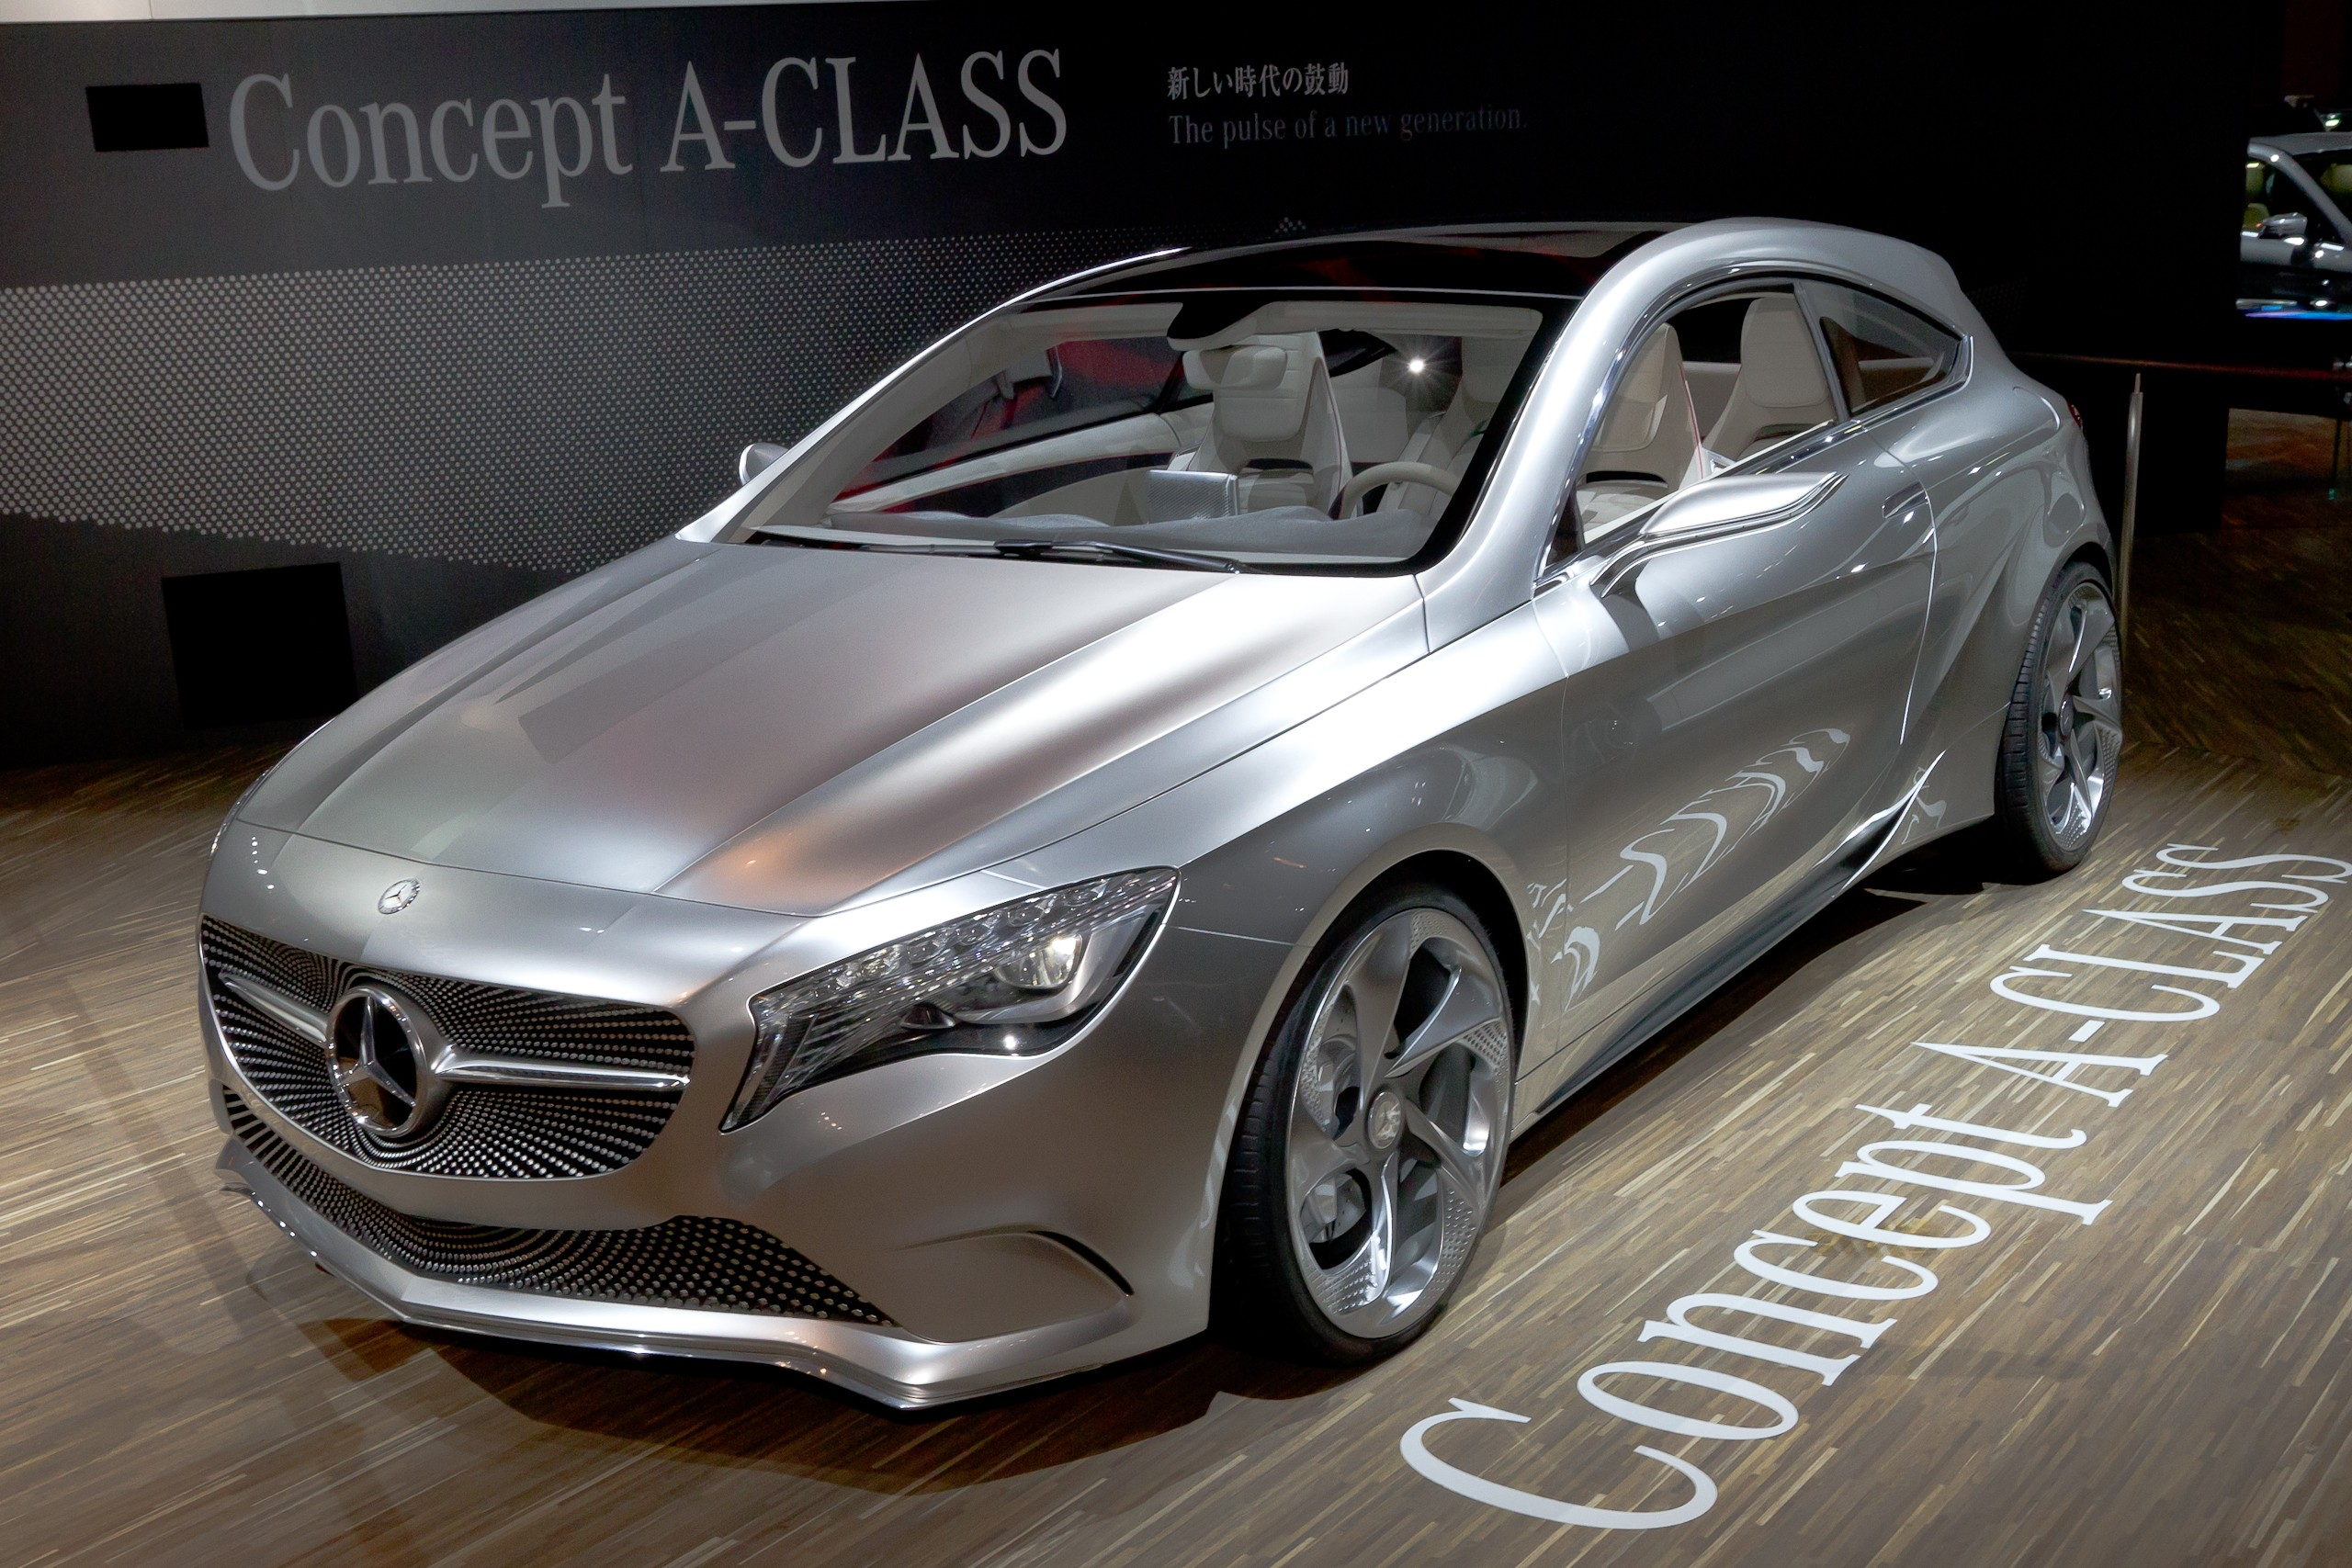 file mercedes benz concept a class front 2011 tokyo motor wikimedia commons. Black Bedroom Furniture Sets. Home Design Ideas